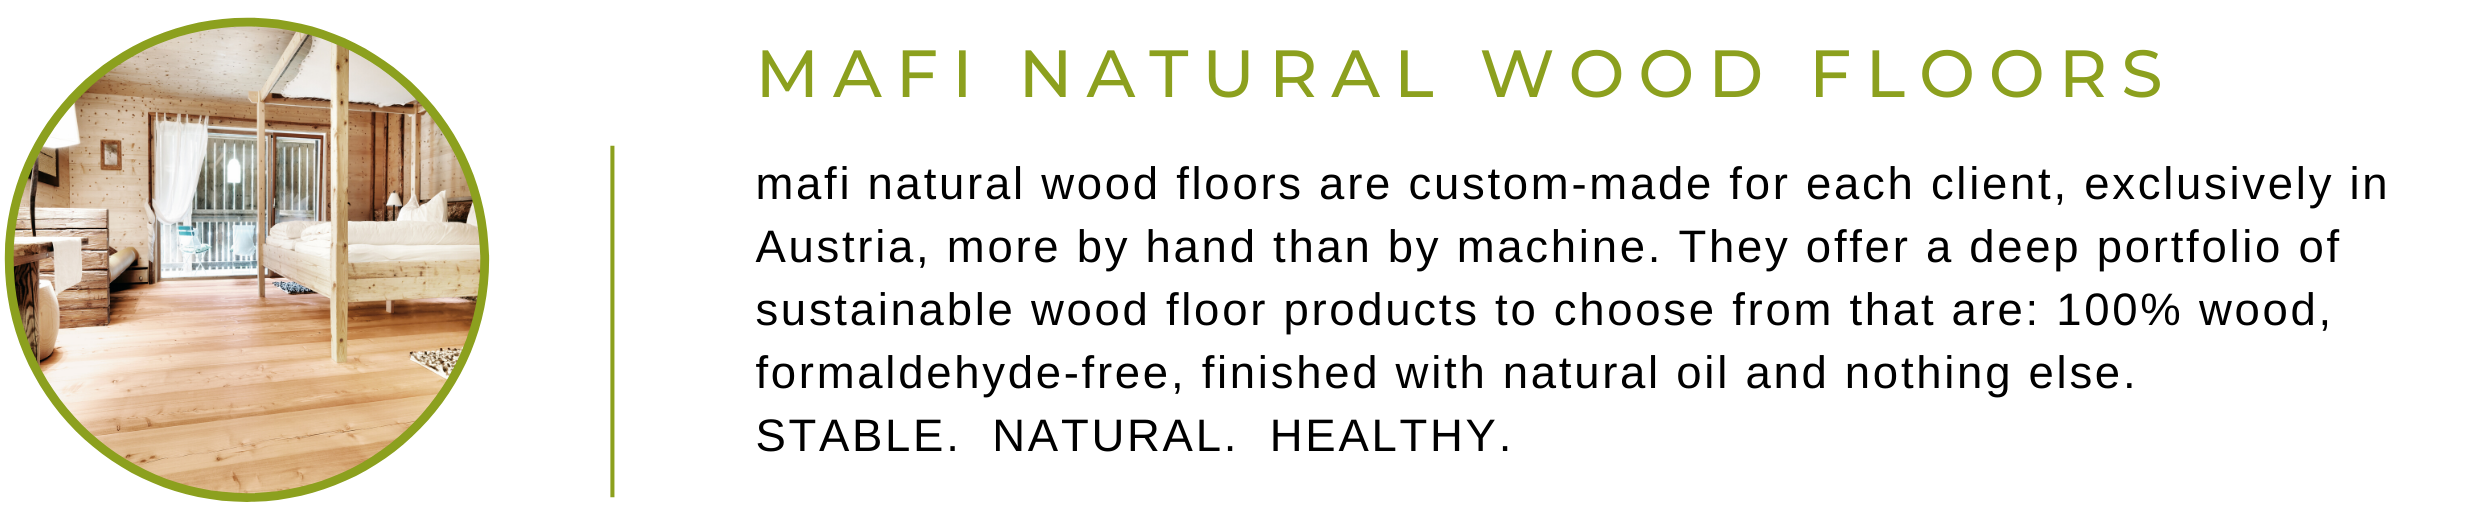 Mafi Natural Wood Floors are custom-made for each client, exclusively in Austria, more by hand than by machine. They offer a deep portfolio of sustainable wood floor products to choose from that are: 100% wood, formaldehyde-free, finished with natural oil and nothing else. STABLE.  NATURAL.  HEALTHY.